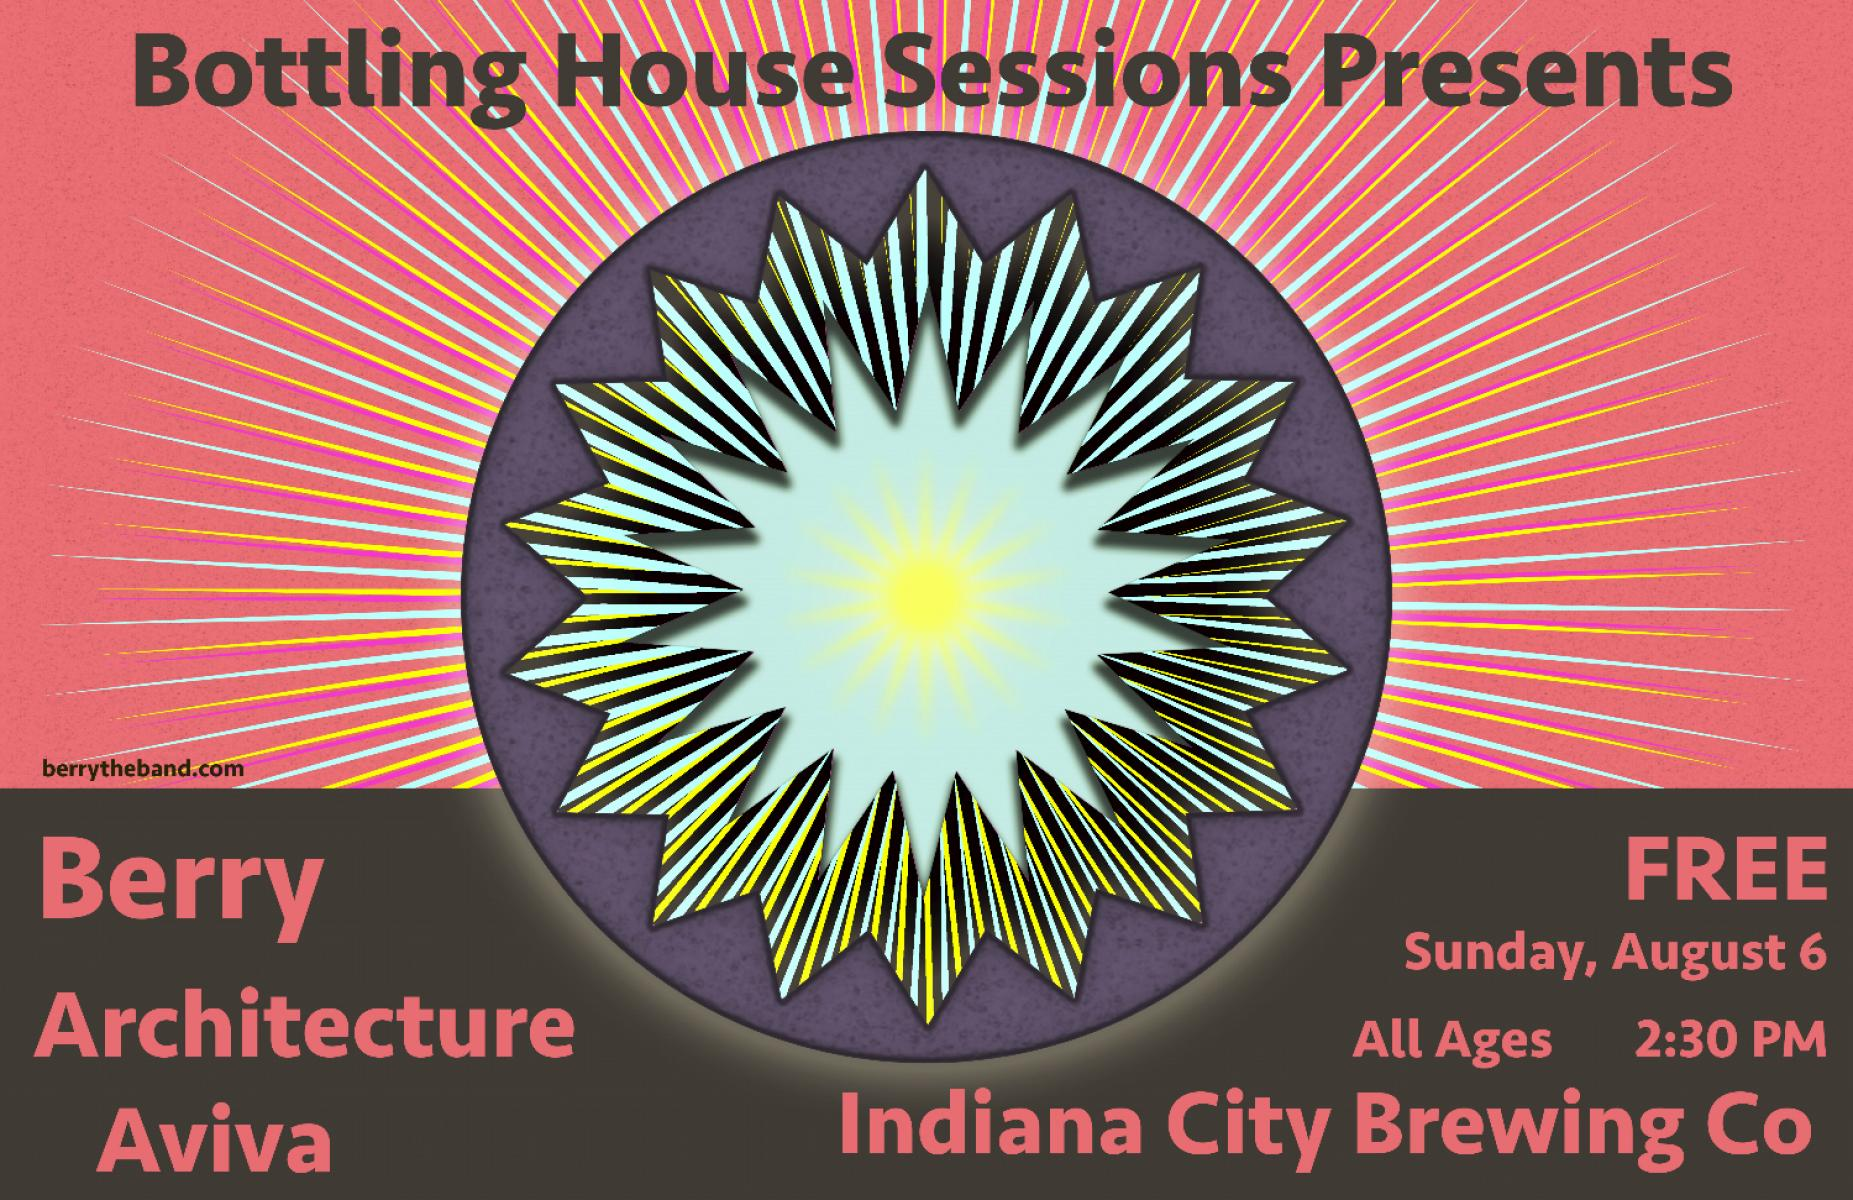 Bottling House Sessions Presents: Berry and Architecture Aviva